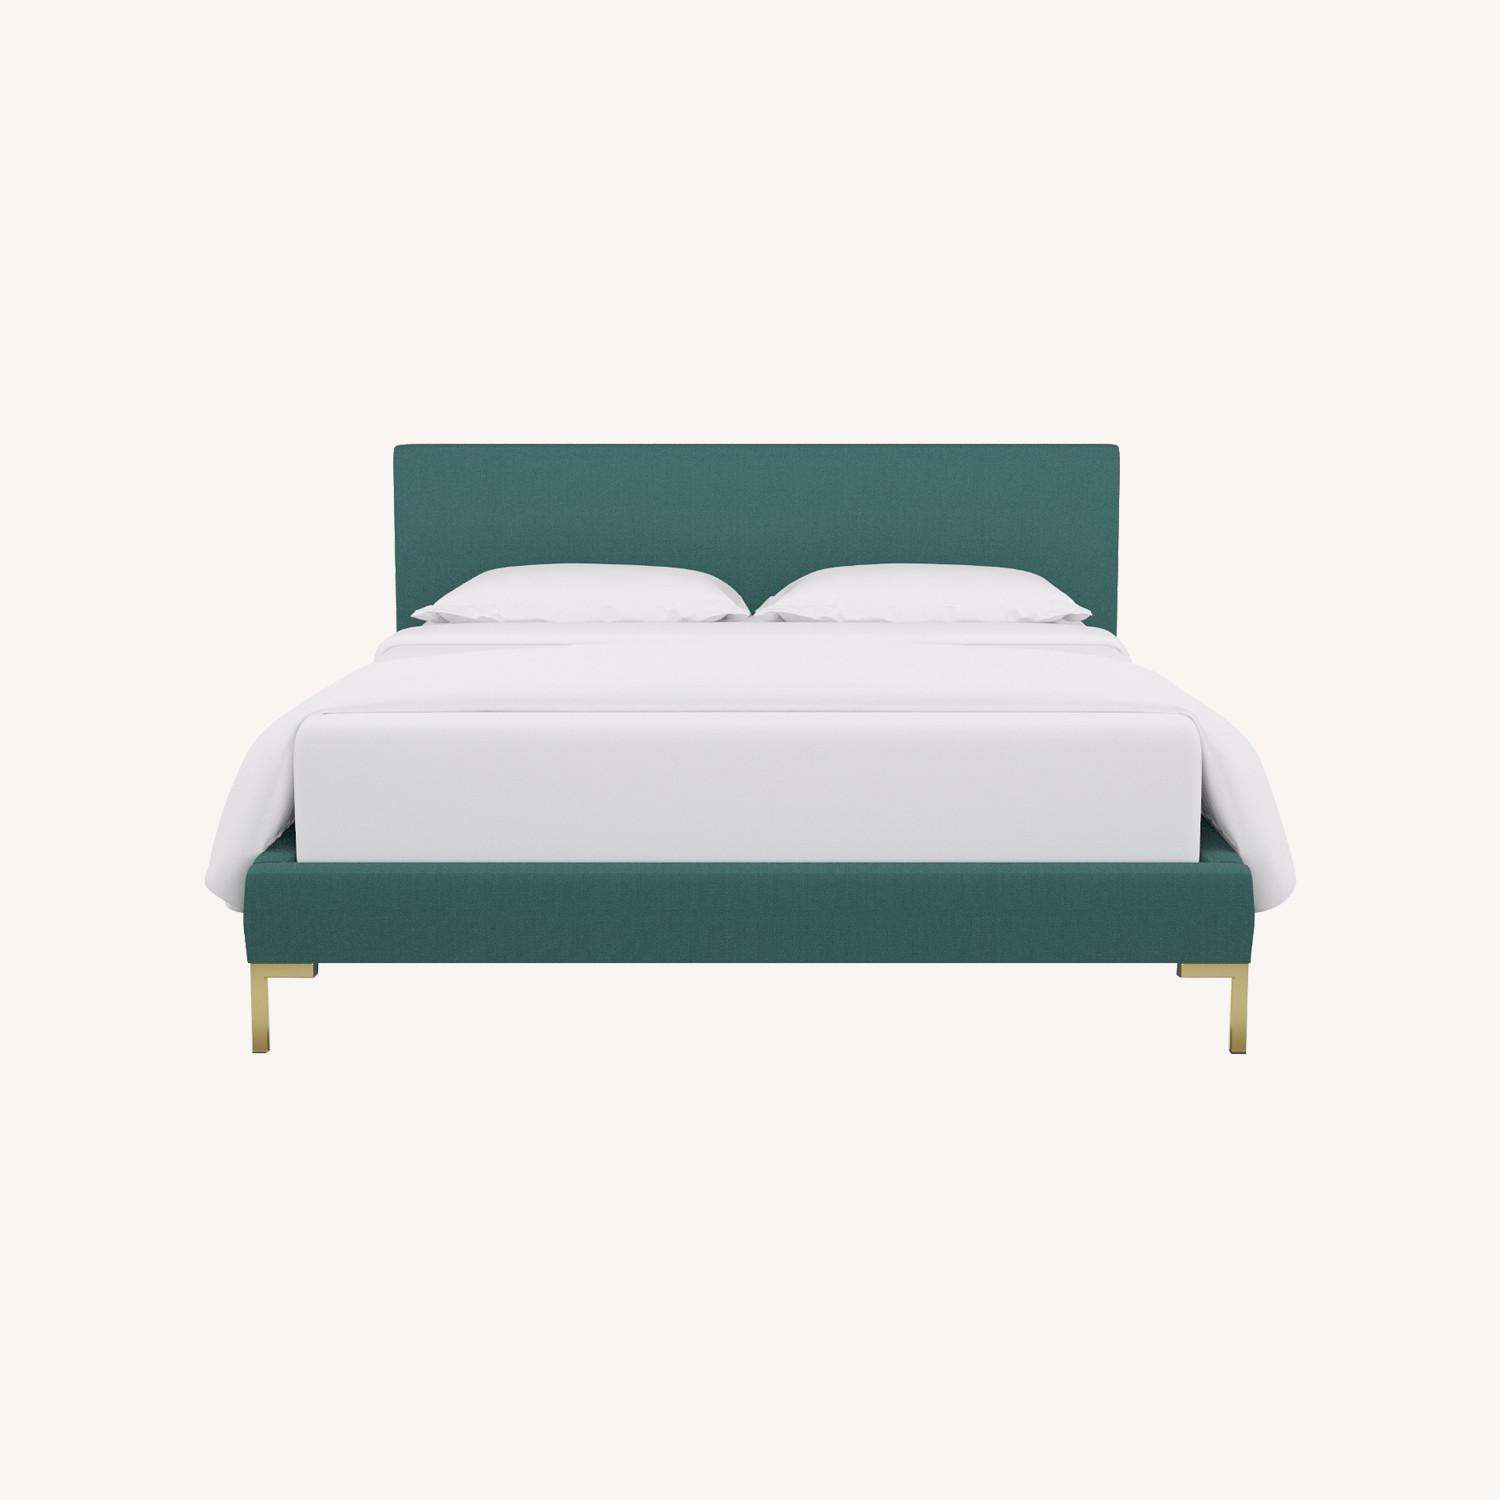 Modern Teal Green Bed - image-0